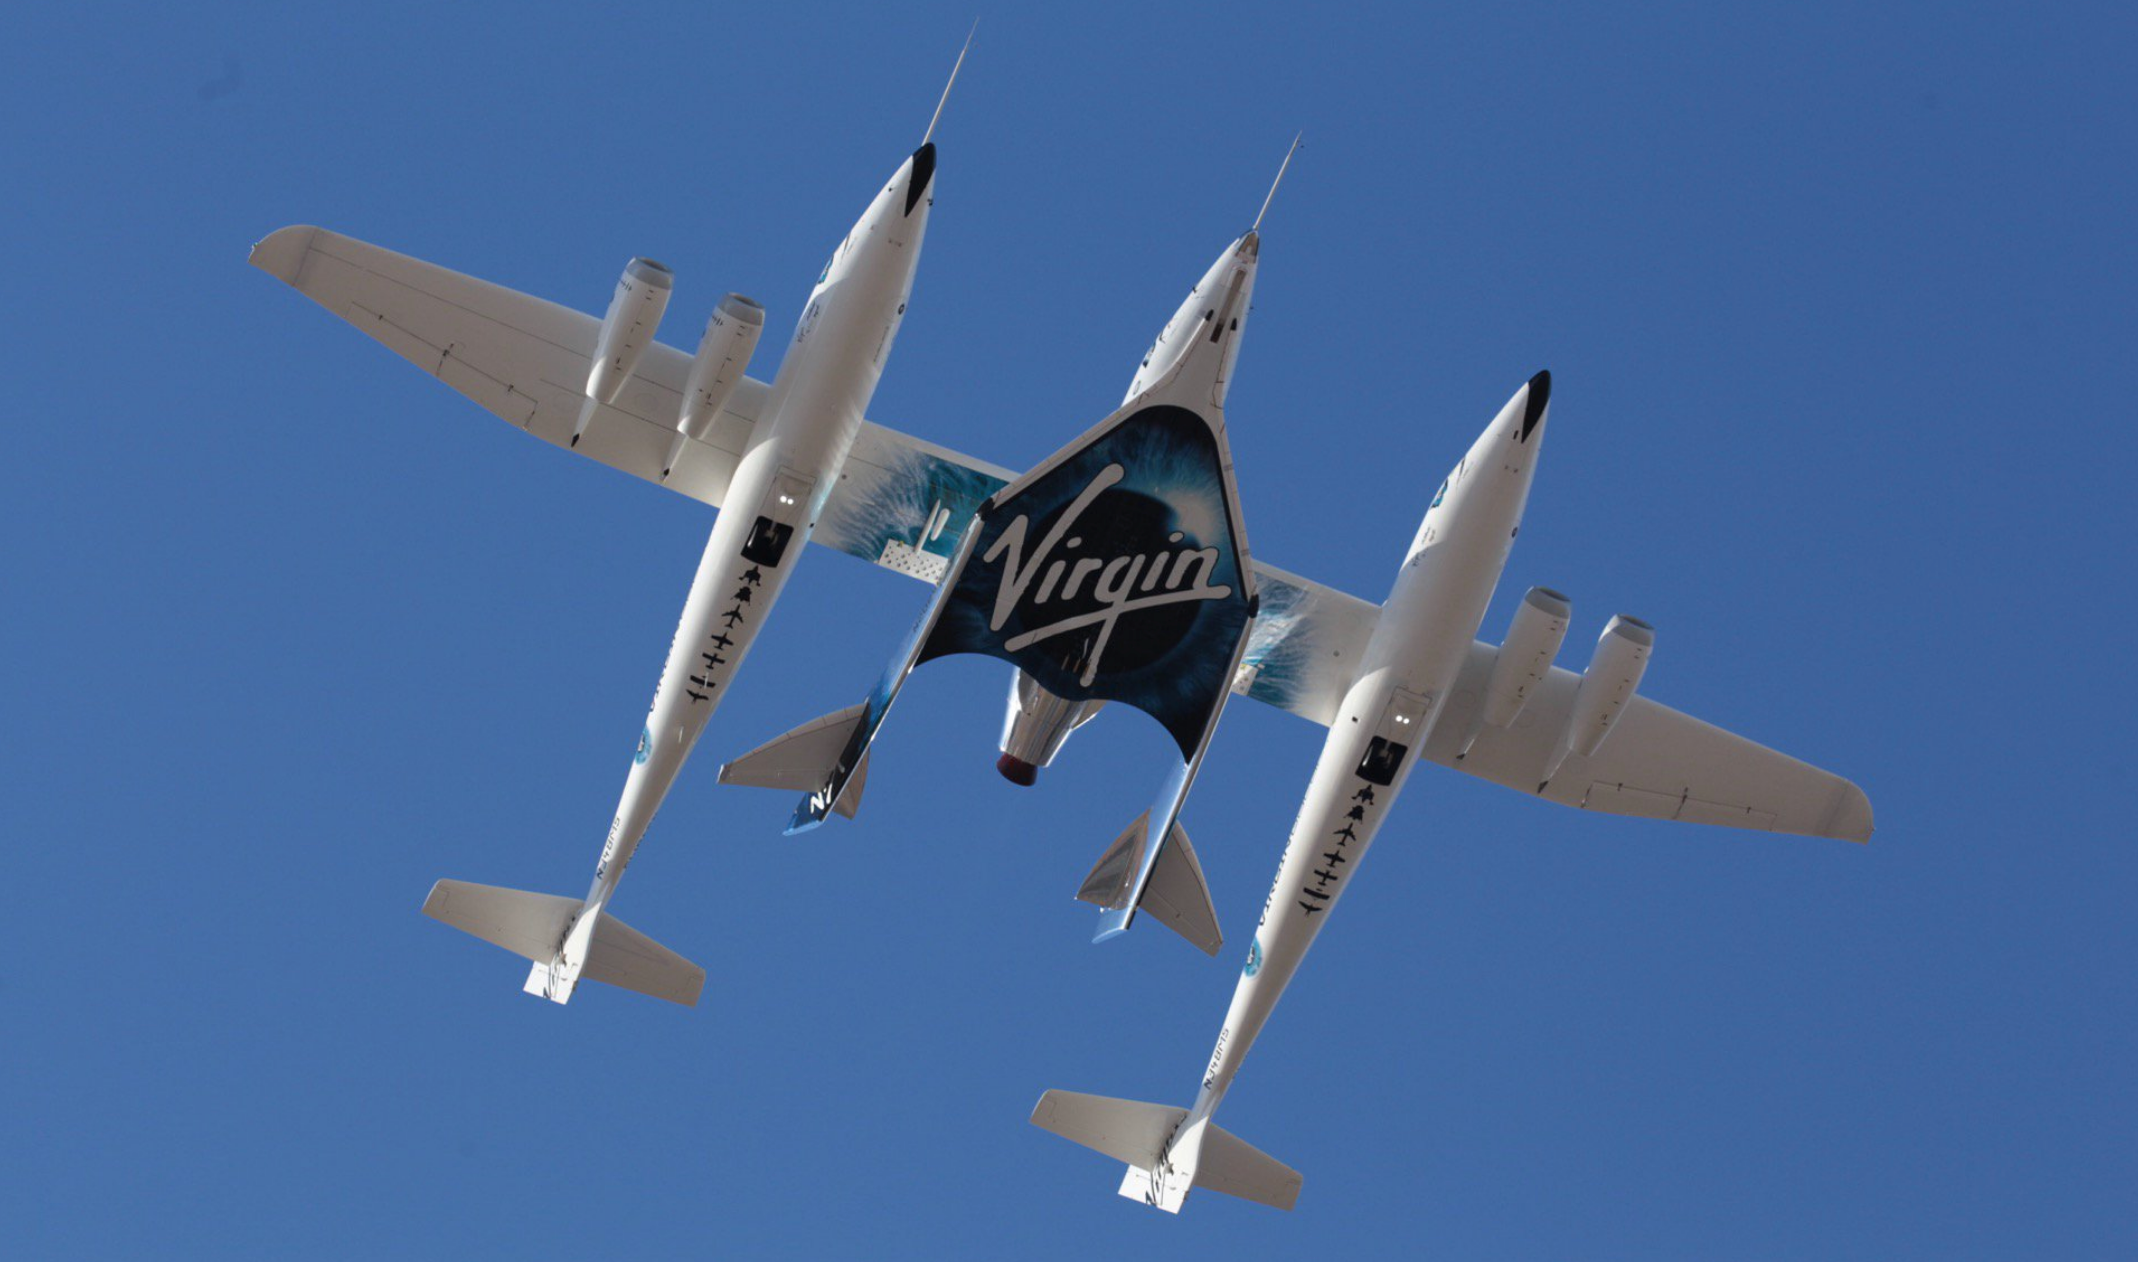 Virgin Galactic Spaceplane Makes First Powered Flight Since Deadly 2014 Disaster